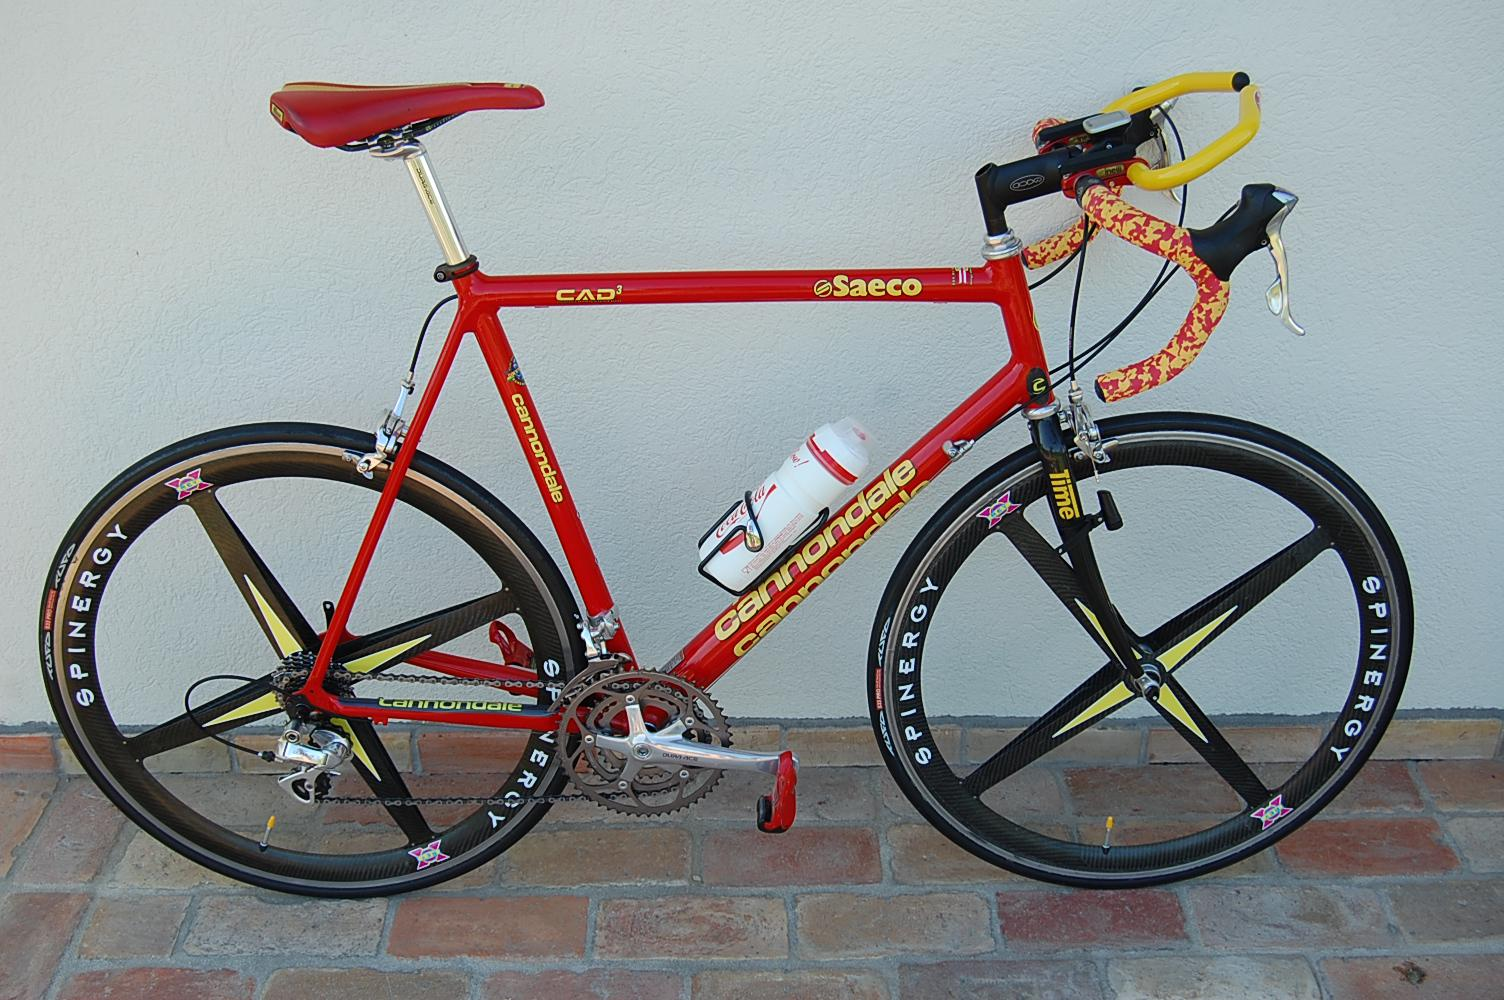 ddb2a9b8537 For Sale: cannondale caad3 saeco classical full dura ace 7700+ ...